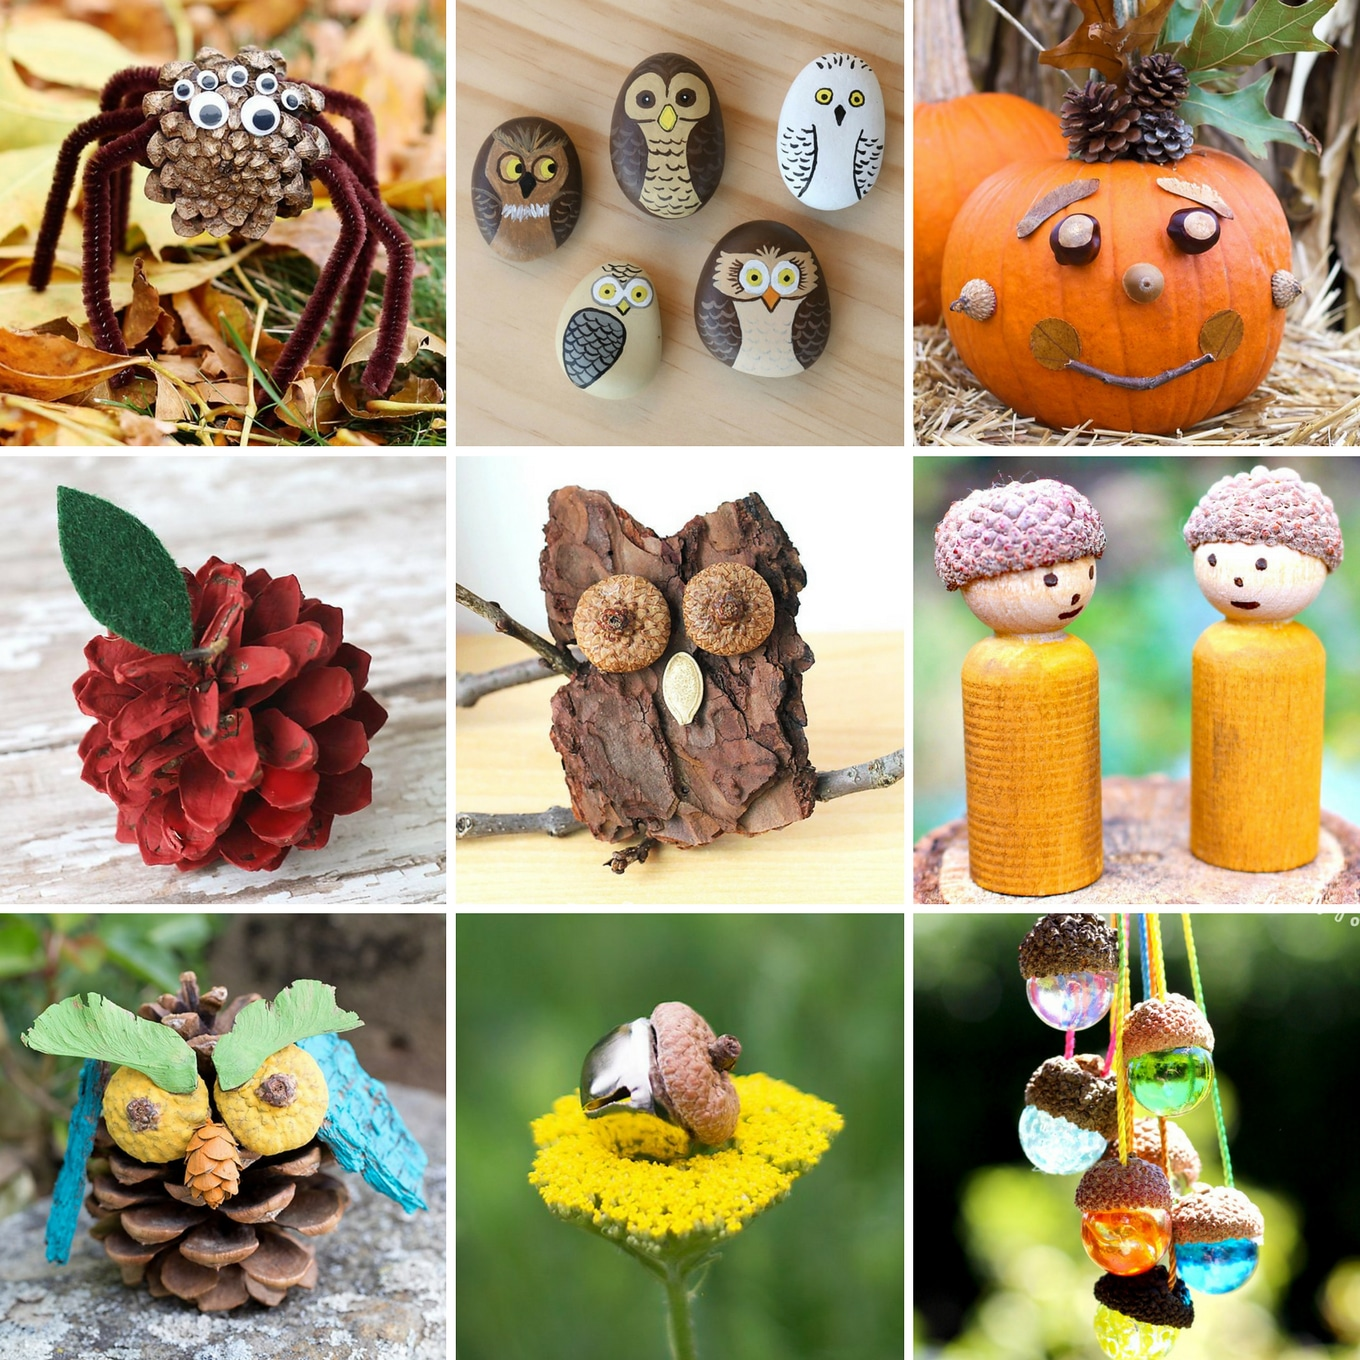 25+ Beautiful Fall Nature Crafts for Kids